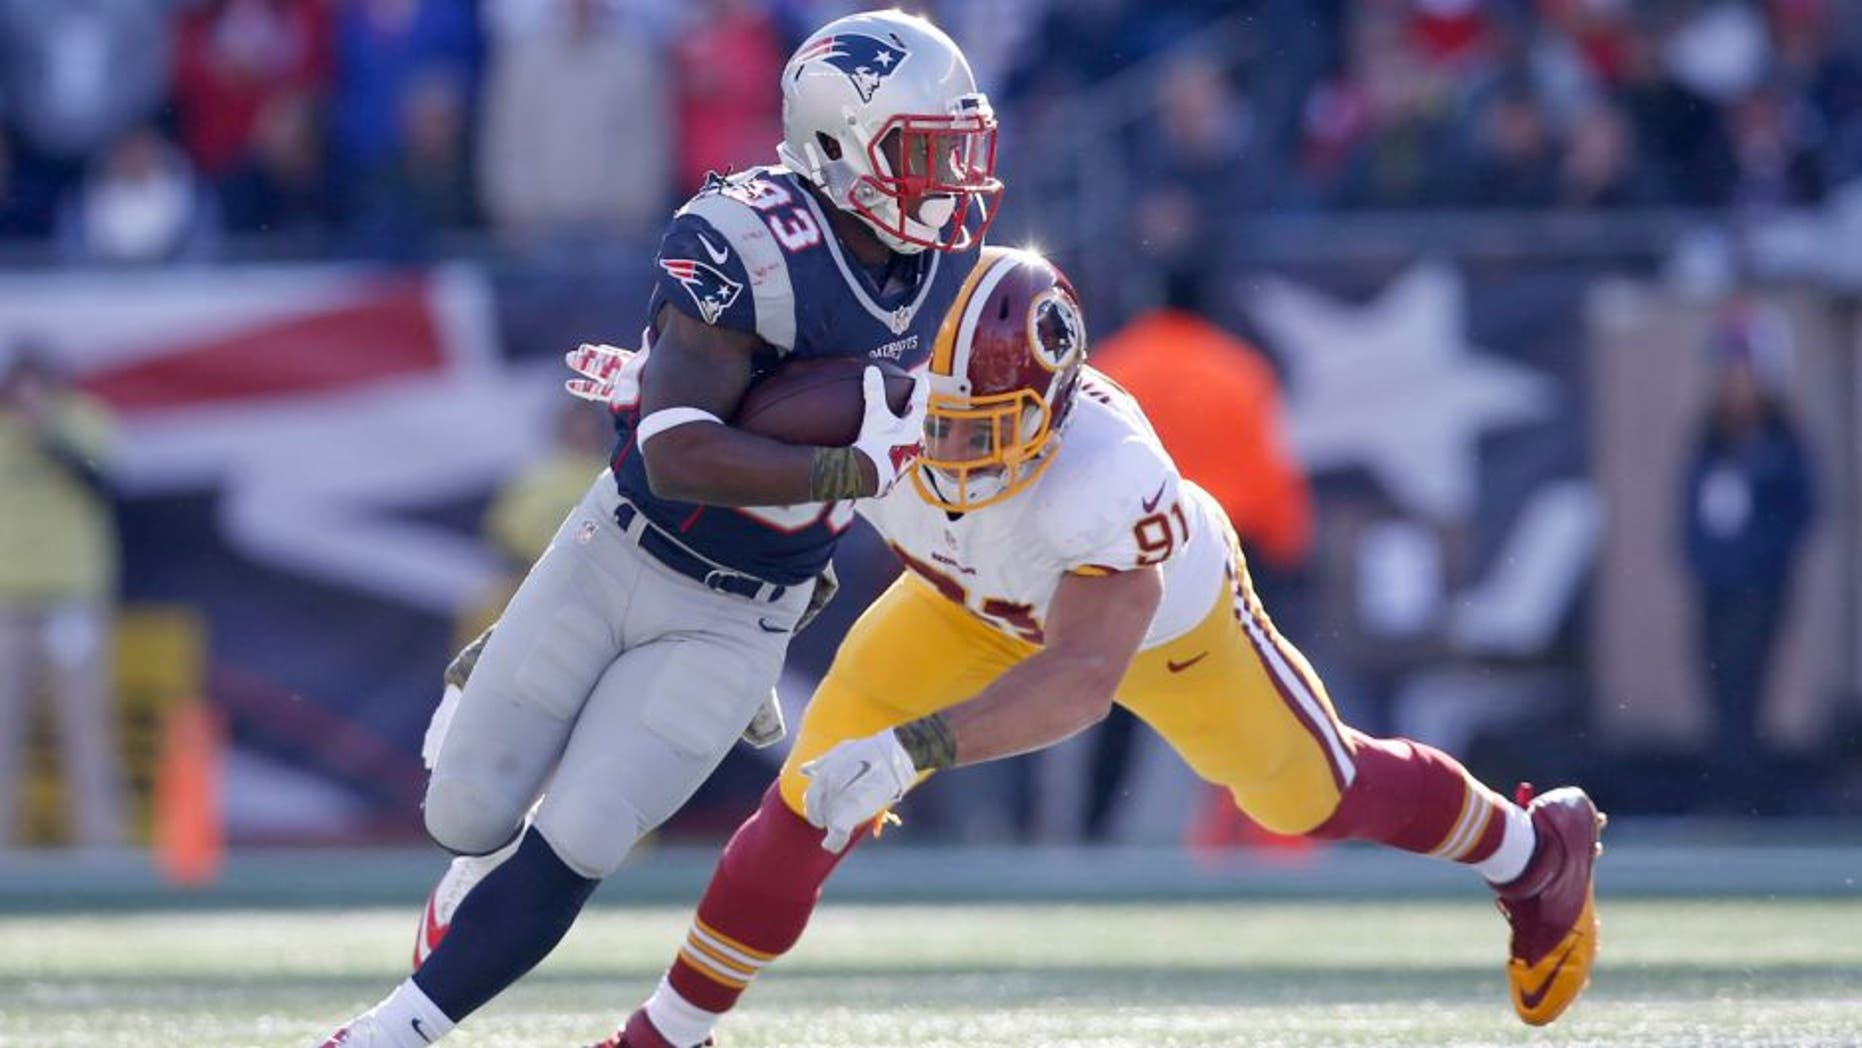 Nov 8, 2015; Foxborough, MA, USA; New England Patriots running back Dion Lewis (33) is tackled by Washington Redskins outside linebacker Ryan Kerrigan (91) during the first quarter at Gillette Stadium. Mandatory Credit: Greg M. Cooper-USA TODAY Sports